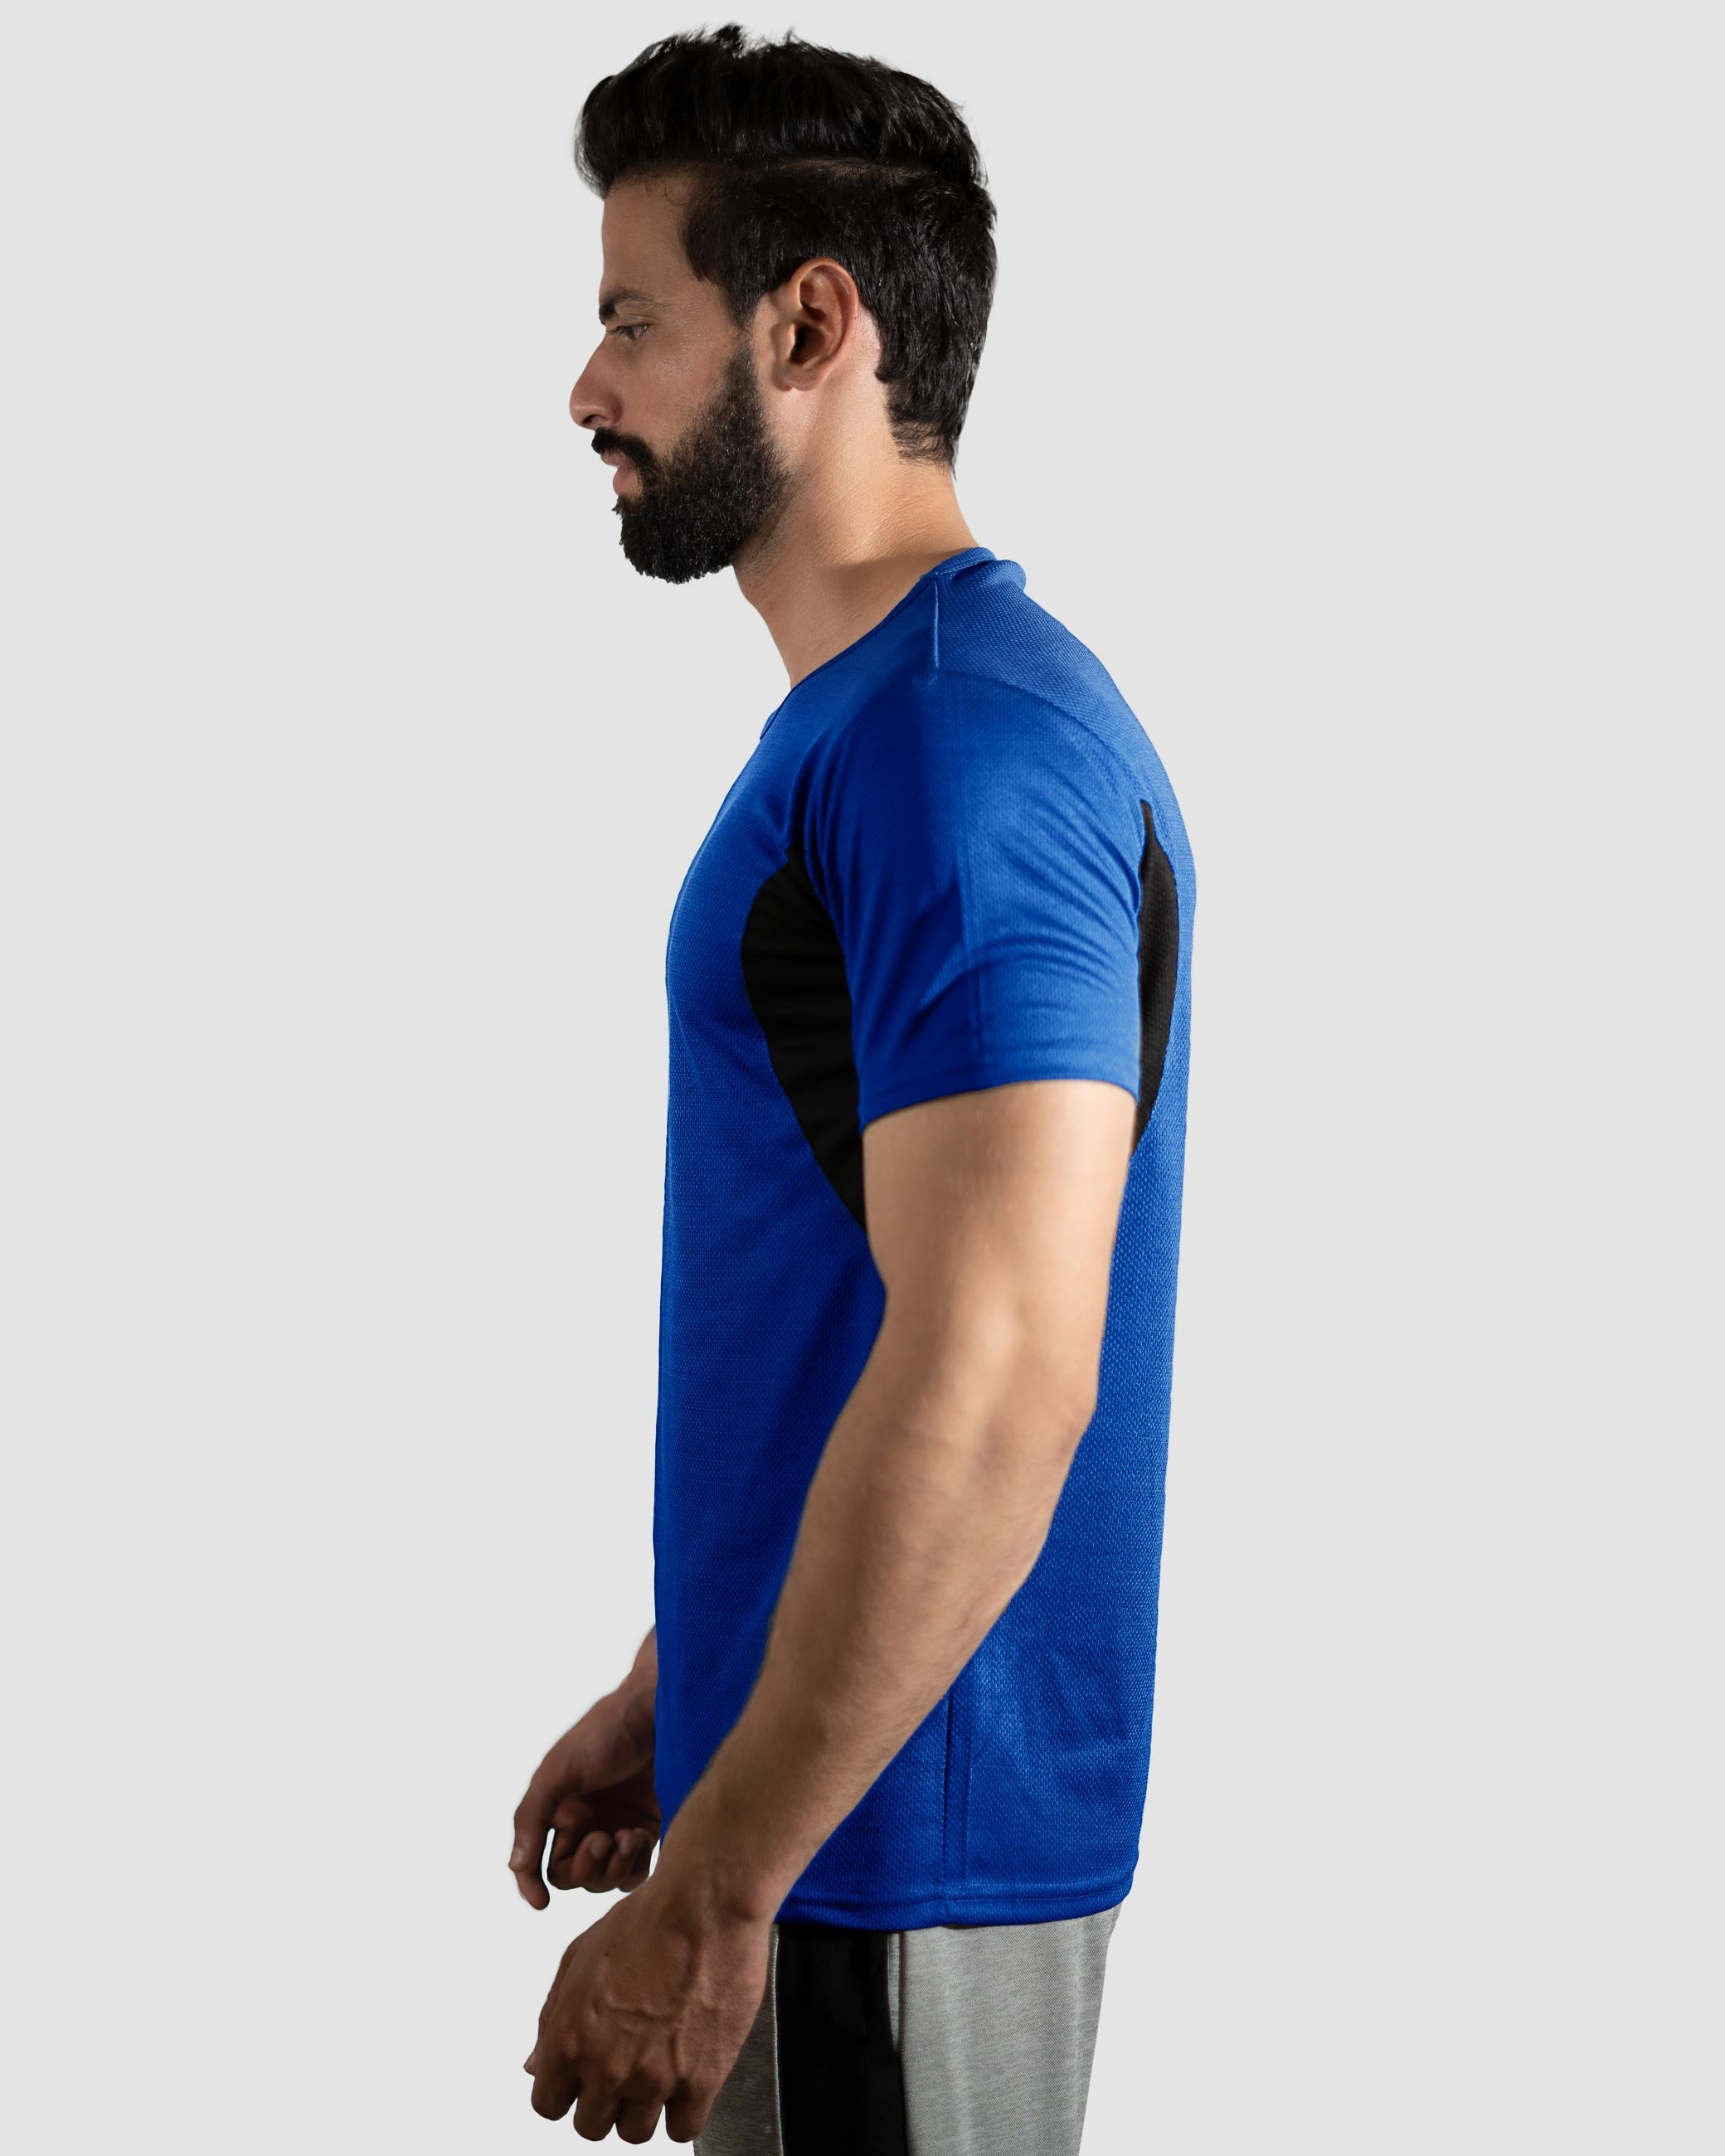 Flex-Fit Techno T-Shirt (Blue) Athflex